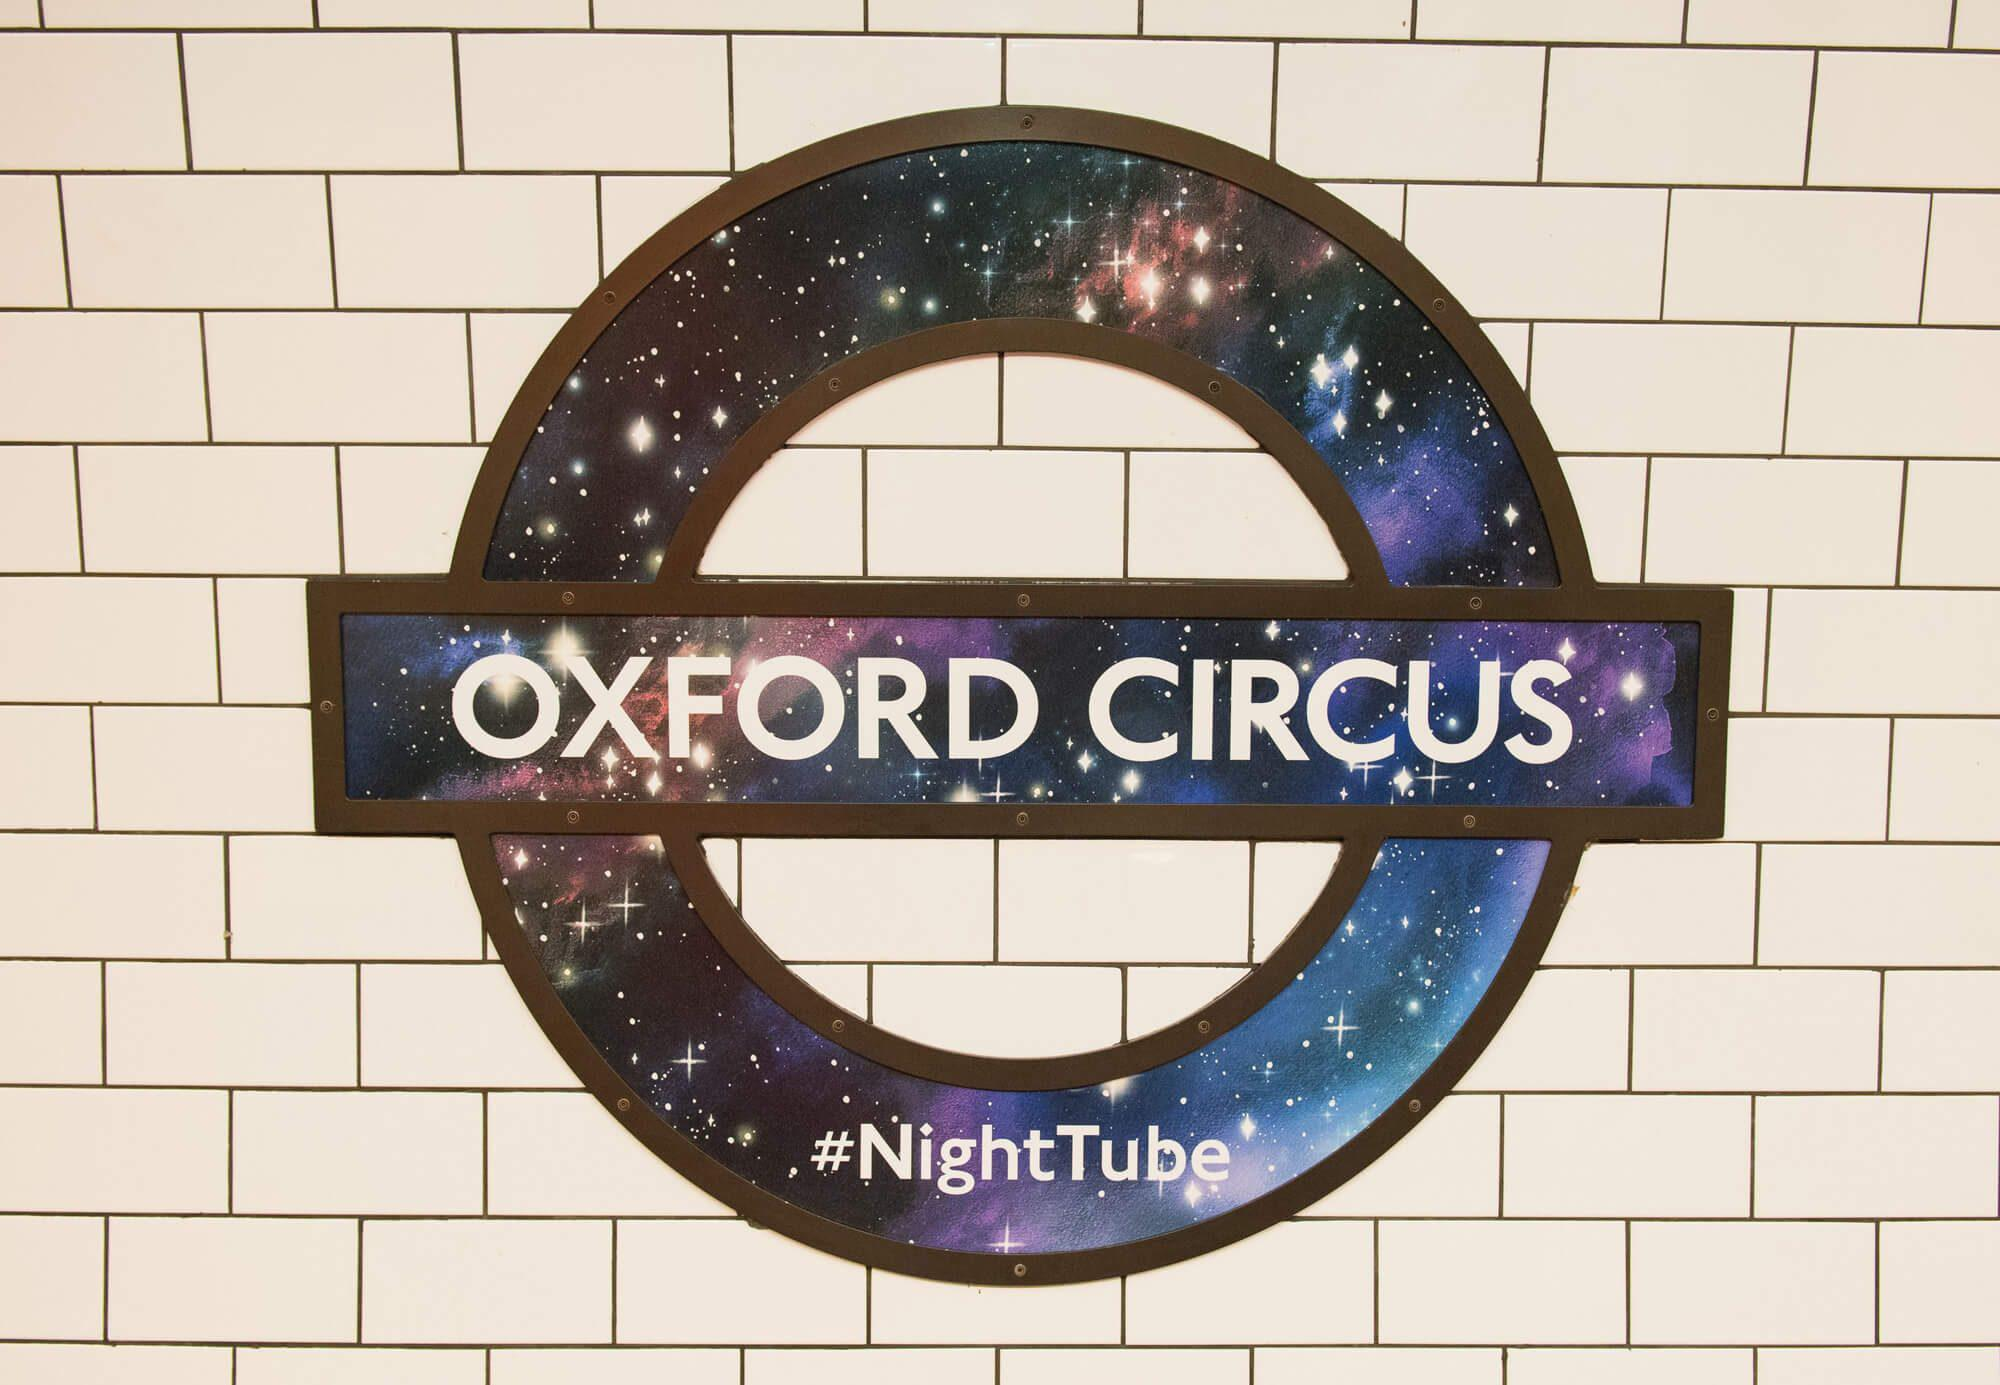 Oxford Circus - Night Tube Roundel #NightTube